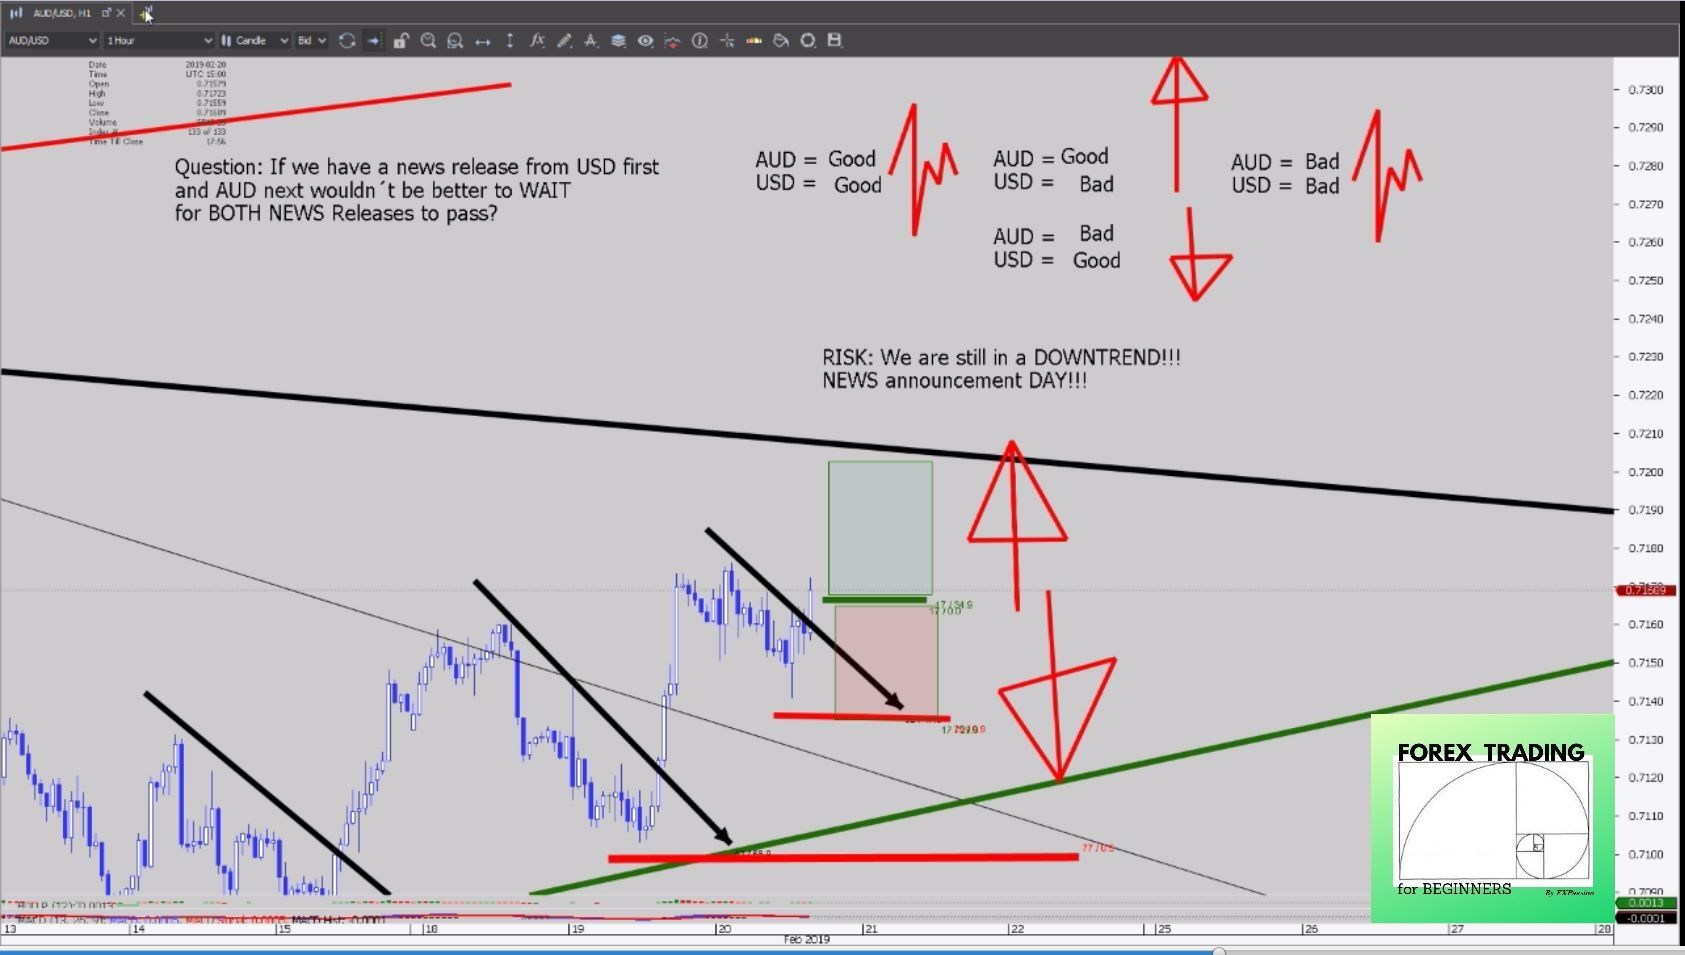 Forex Trading For Beginners How To Trade Support Resistance